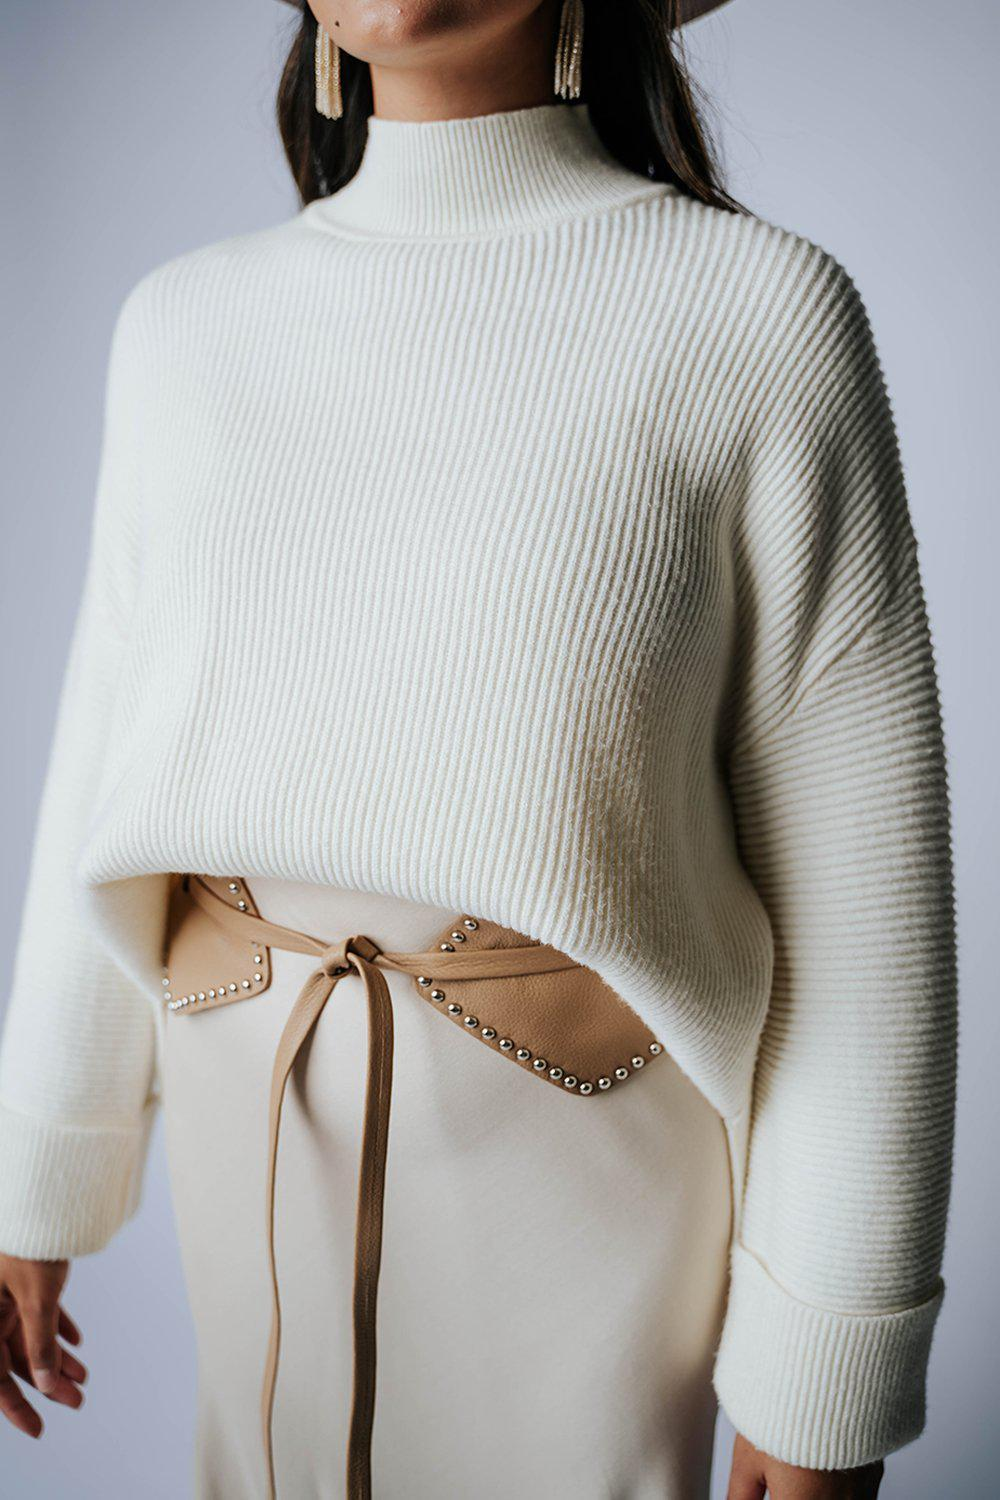 best_seller, Only Sweetness Pullover in Cream, Top, women's clothing, dresses, skirts, coats, jackets, shoes, boots, tops, tee shirts, jeans, free people, levi's, rollas, jumpsuits, bottoms, tops, sweaters, pullovers, pants, shorts, sweats,.